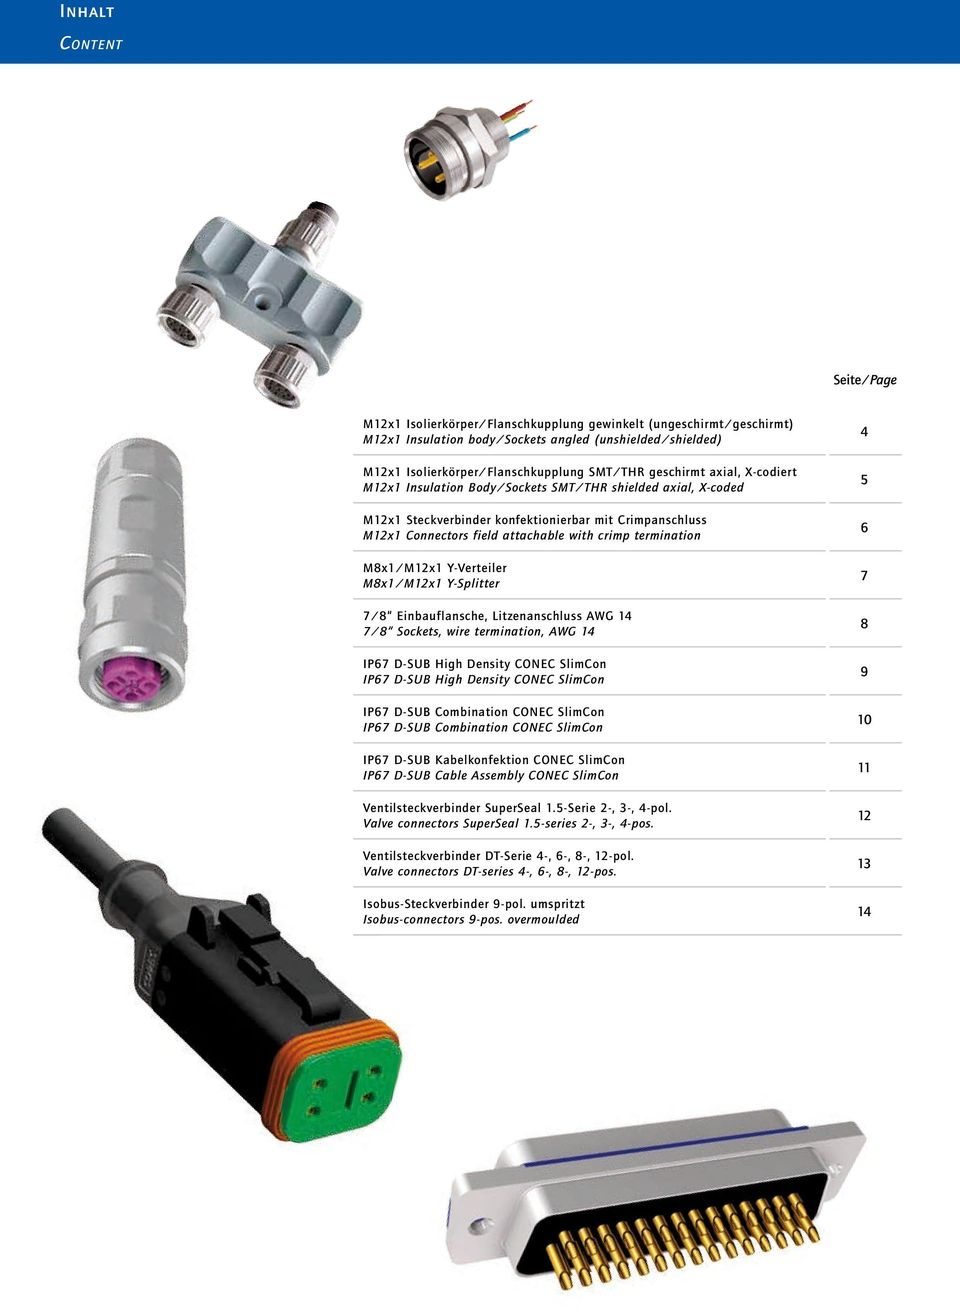 Connectors field attachable with crimp termination M8x1/M12x1 Y-Verteiler M8x1/M12x1 Y-Splitter 7/8 Einbauflansche, Litzenanschluss AWG 14 7/8 Sockets, wire termination, AWG 14 IP67 D-SUB High